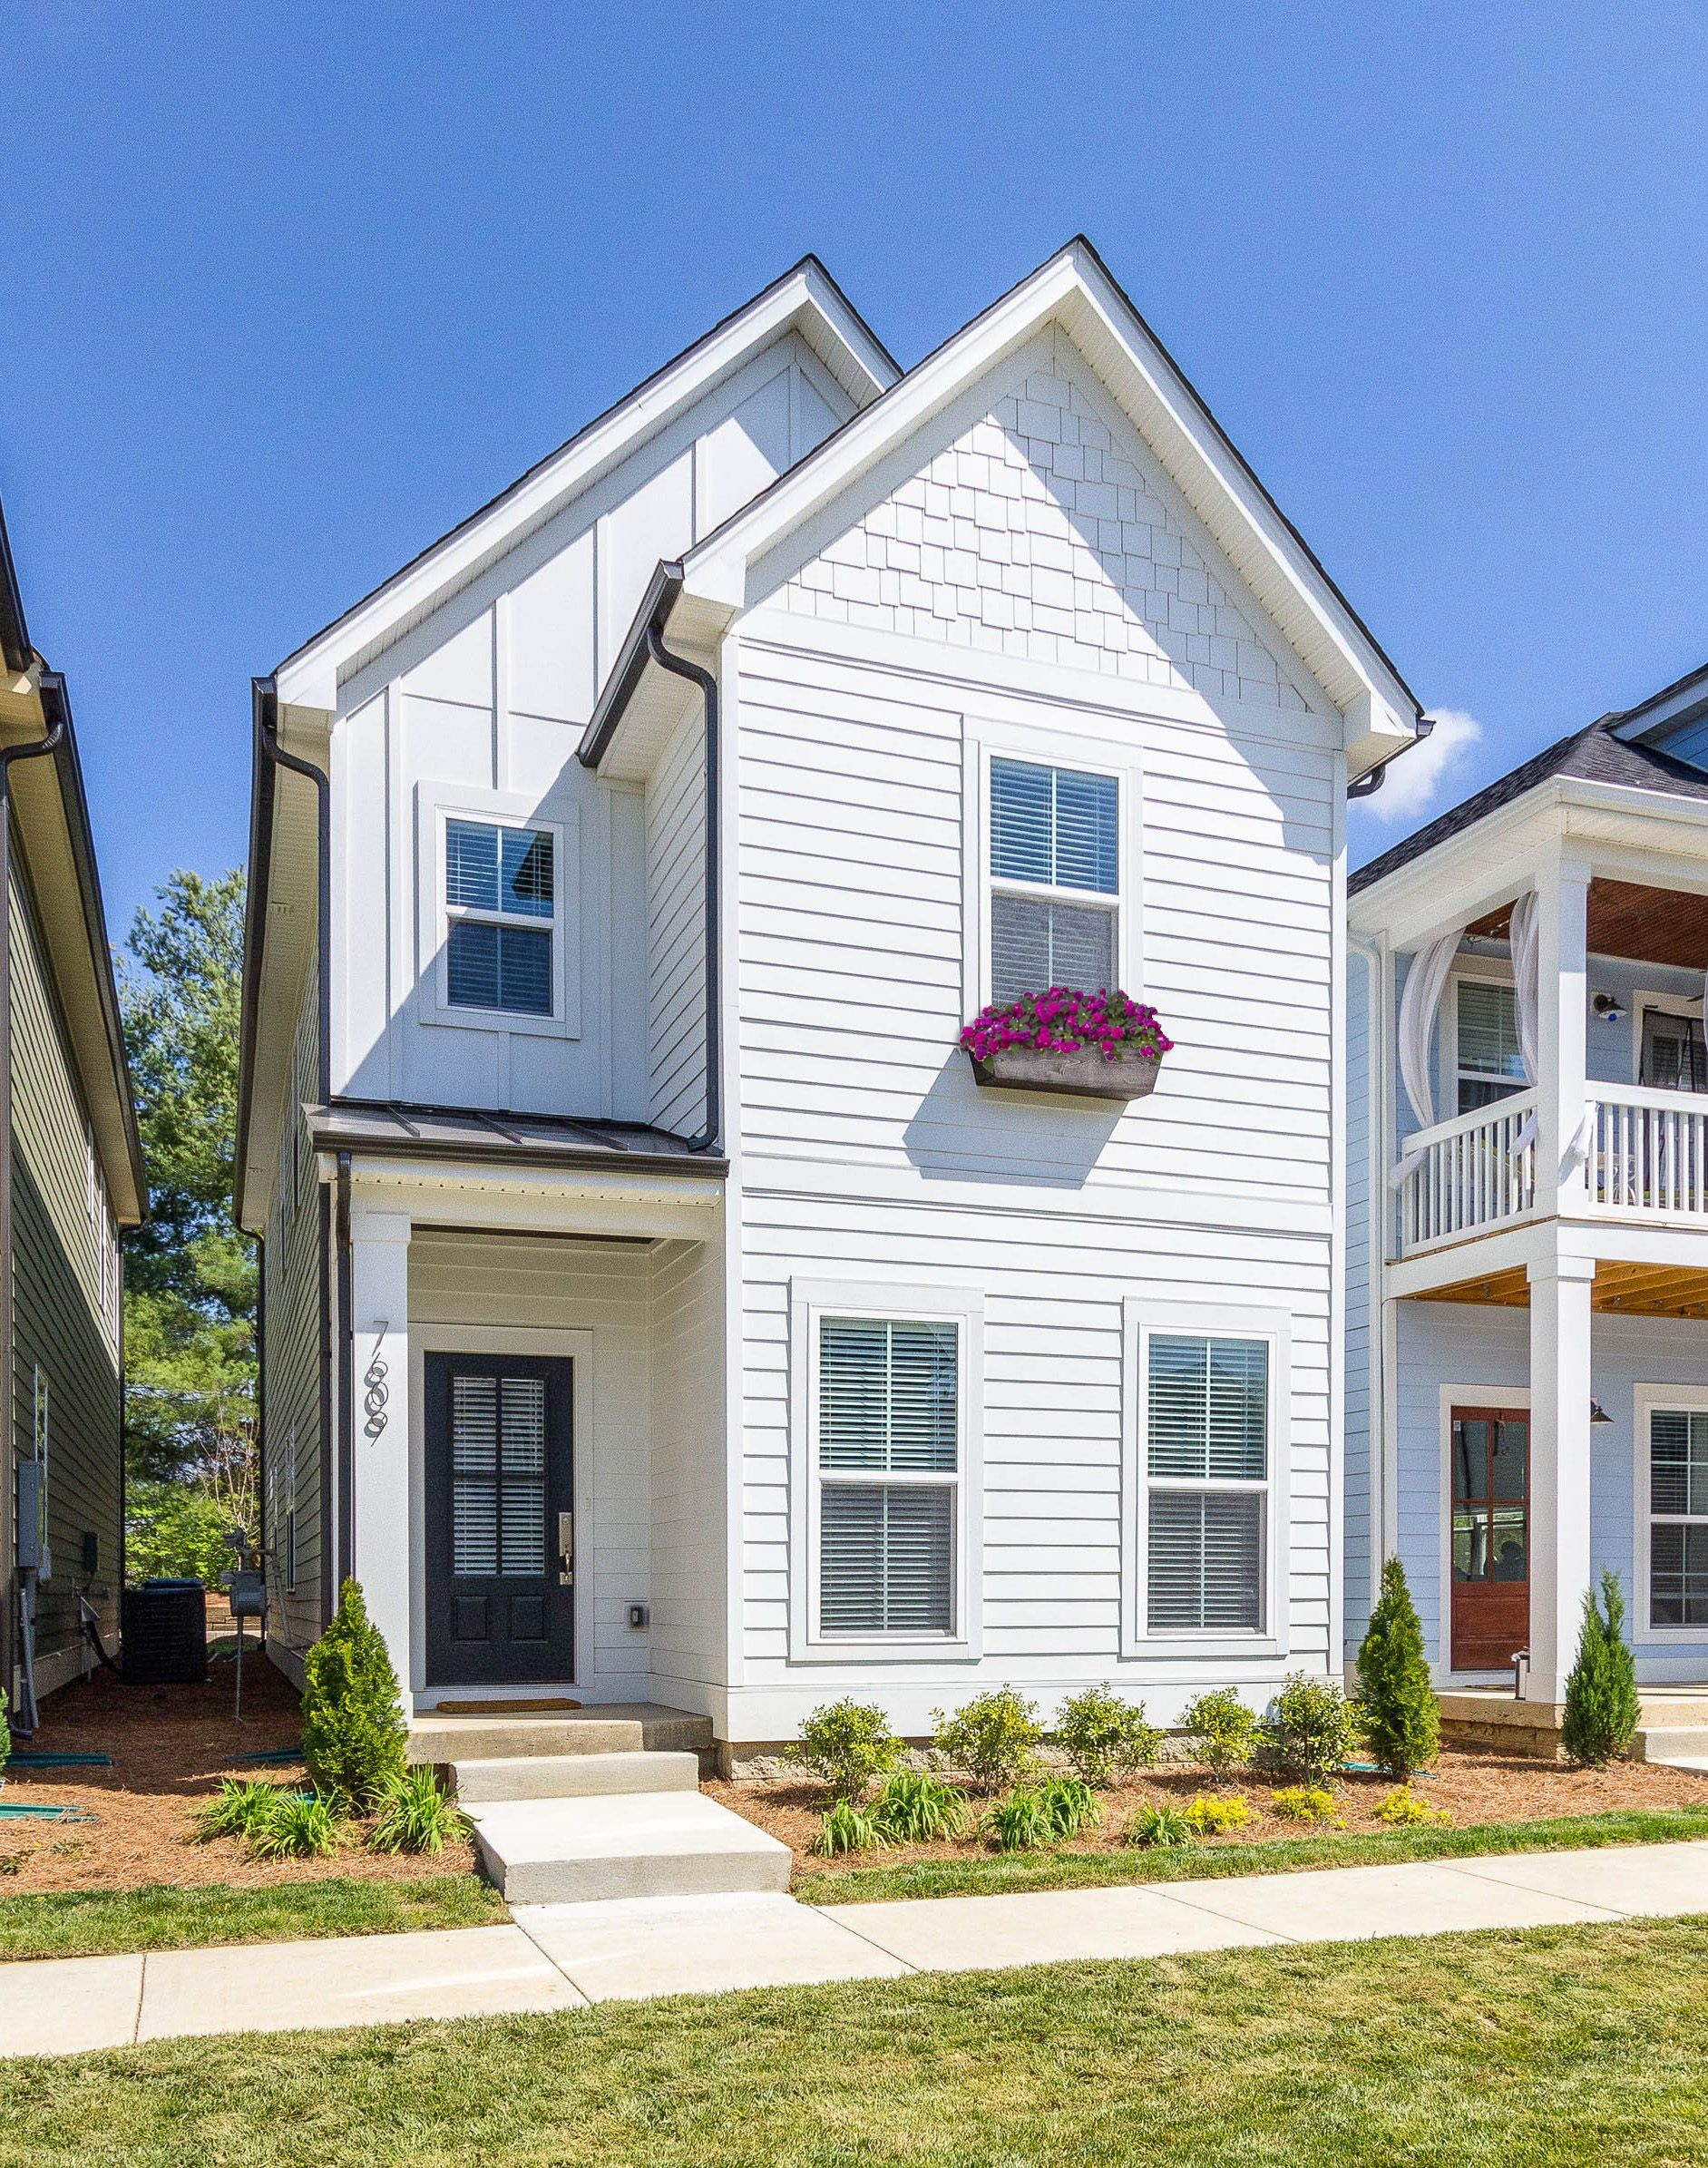 Nashville Tennessee Parkside Builders James Hardie Arctic White Exterior With Arctic White Trim House Exterior Dream House Exterior Exterior House Colors